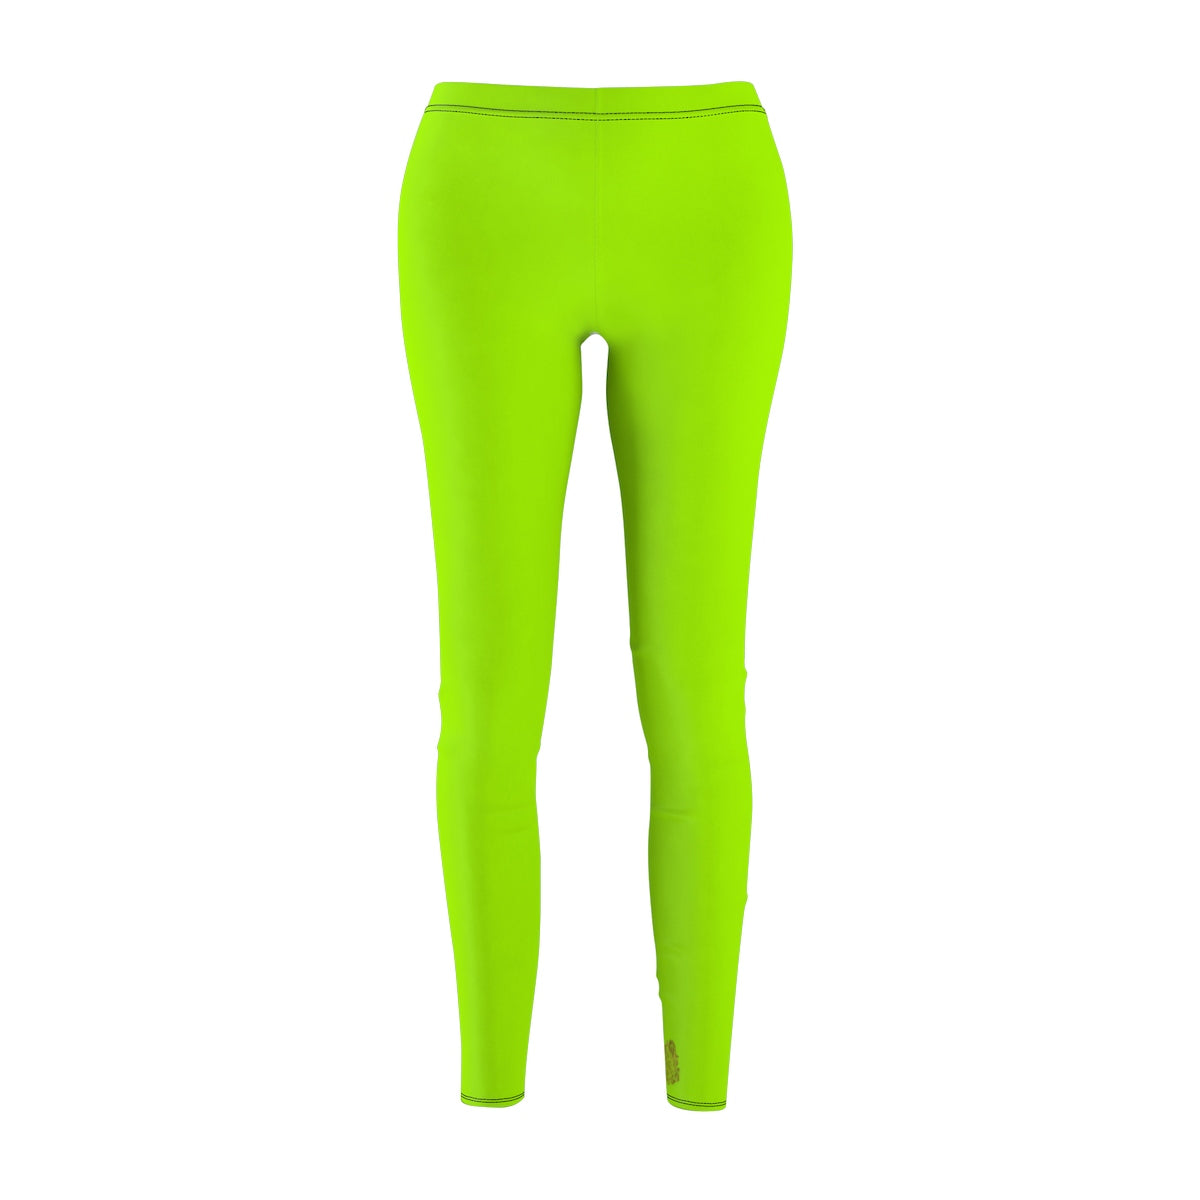 Lime Neon Green Solid Color Print Women's Long Casual Leggings- Made in USA-Casual Leggings-White Seams-M-Heidi Kimura Art LLC